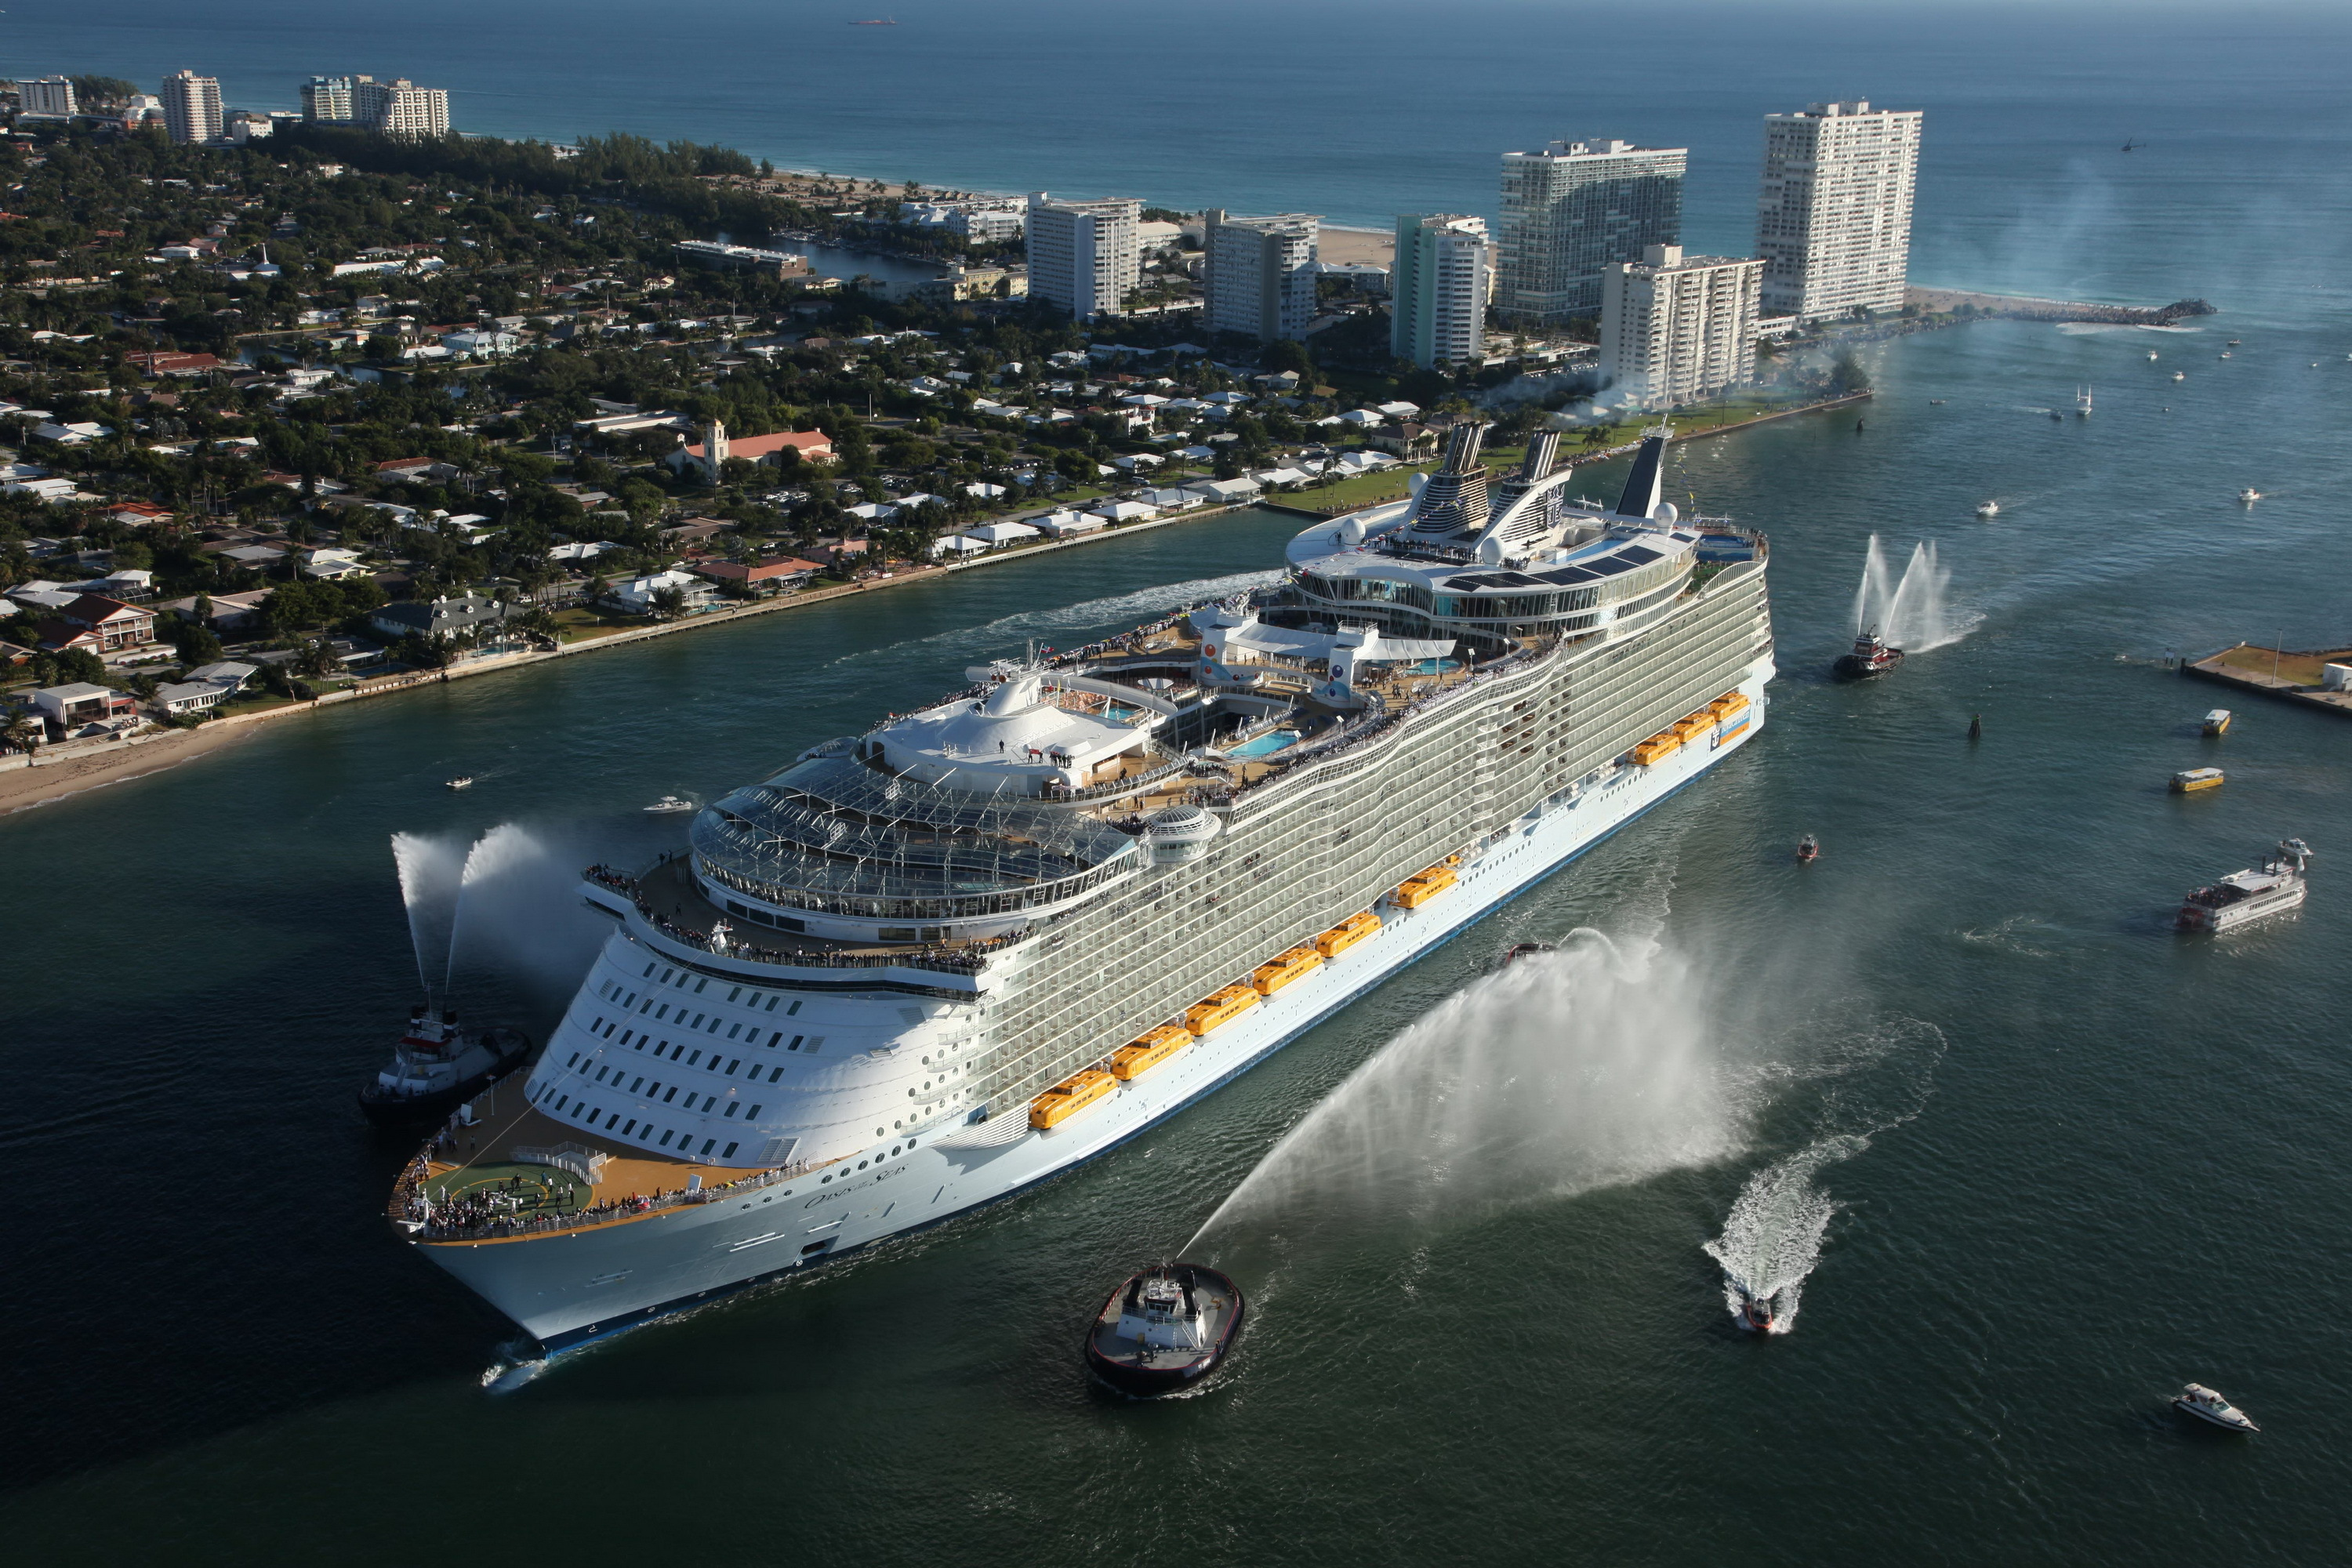 royal caribbean ships